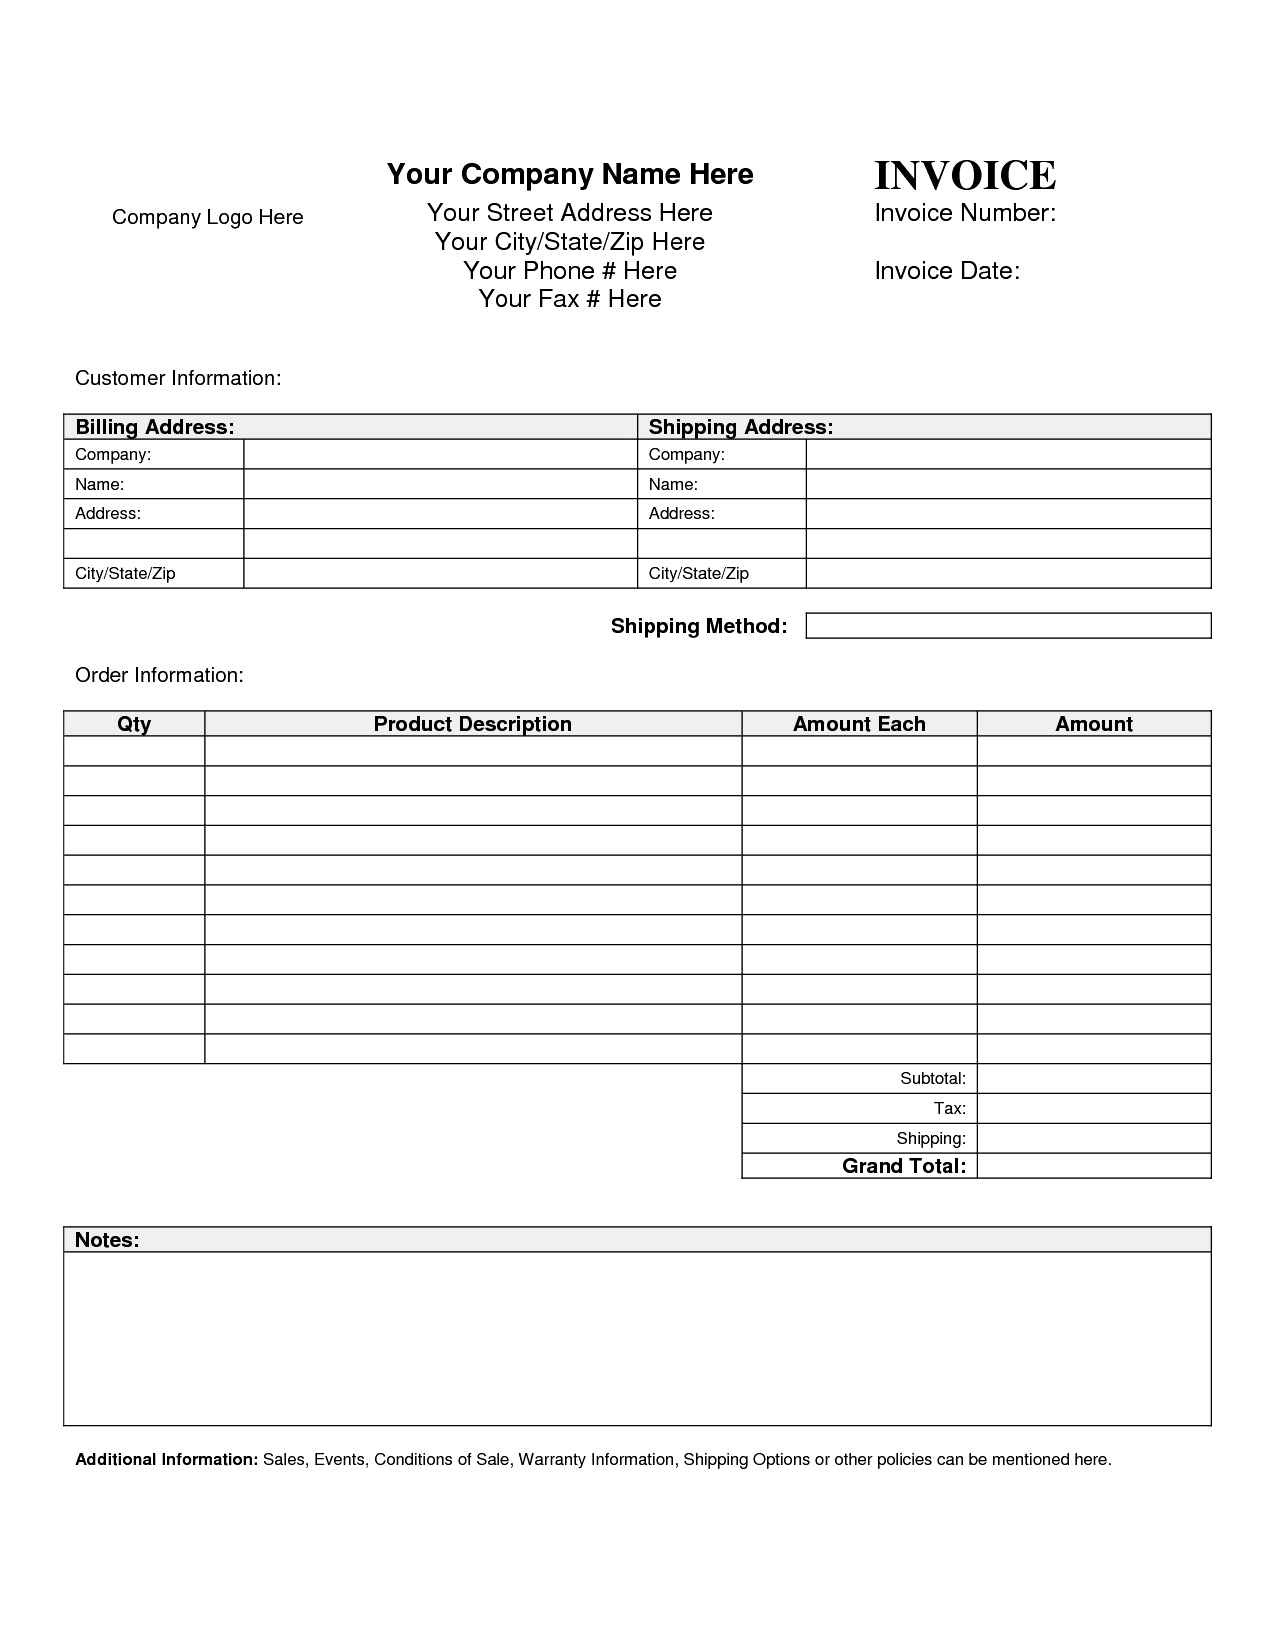 Free Printable Blank Invoice Sheet Templates Word Template Sample - Free Printable Customer Information Sheets